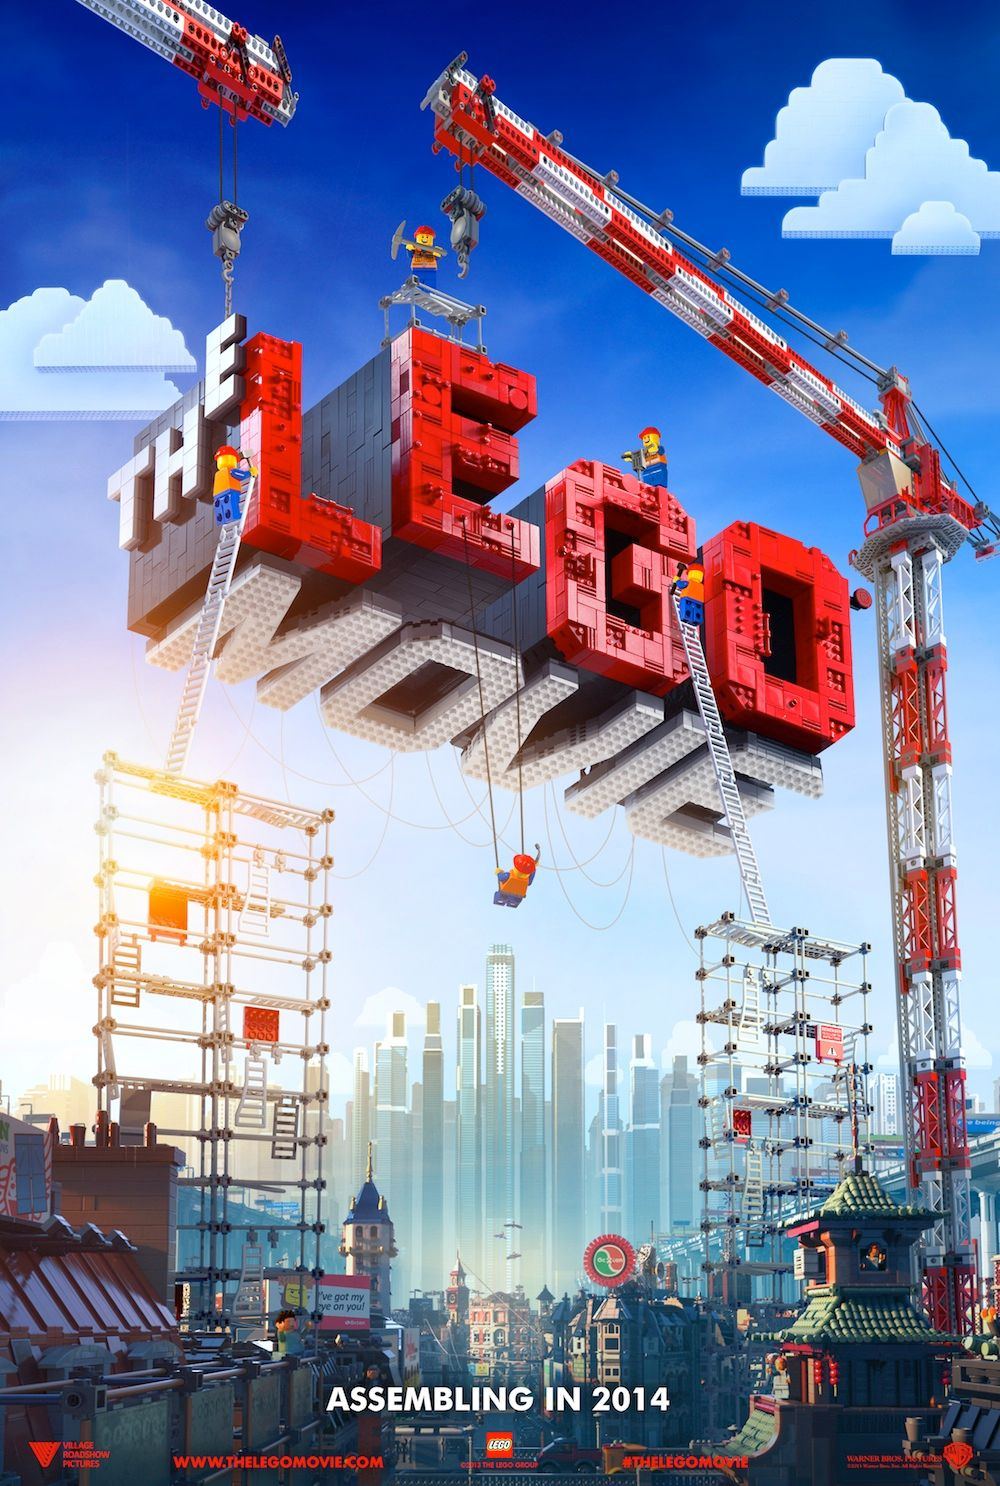 http://cdn.collider.com/wp-content/uploads/the-lego-movie-poster.jpg